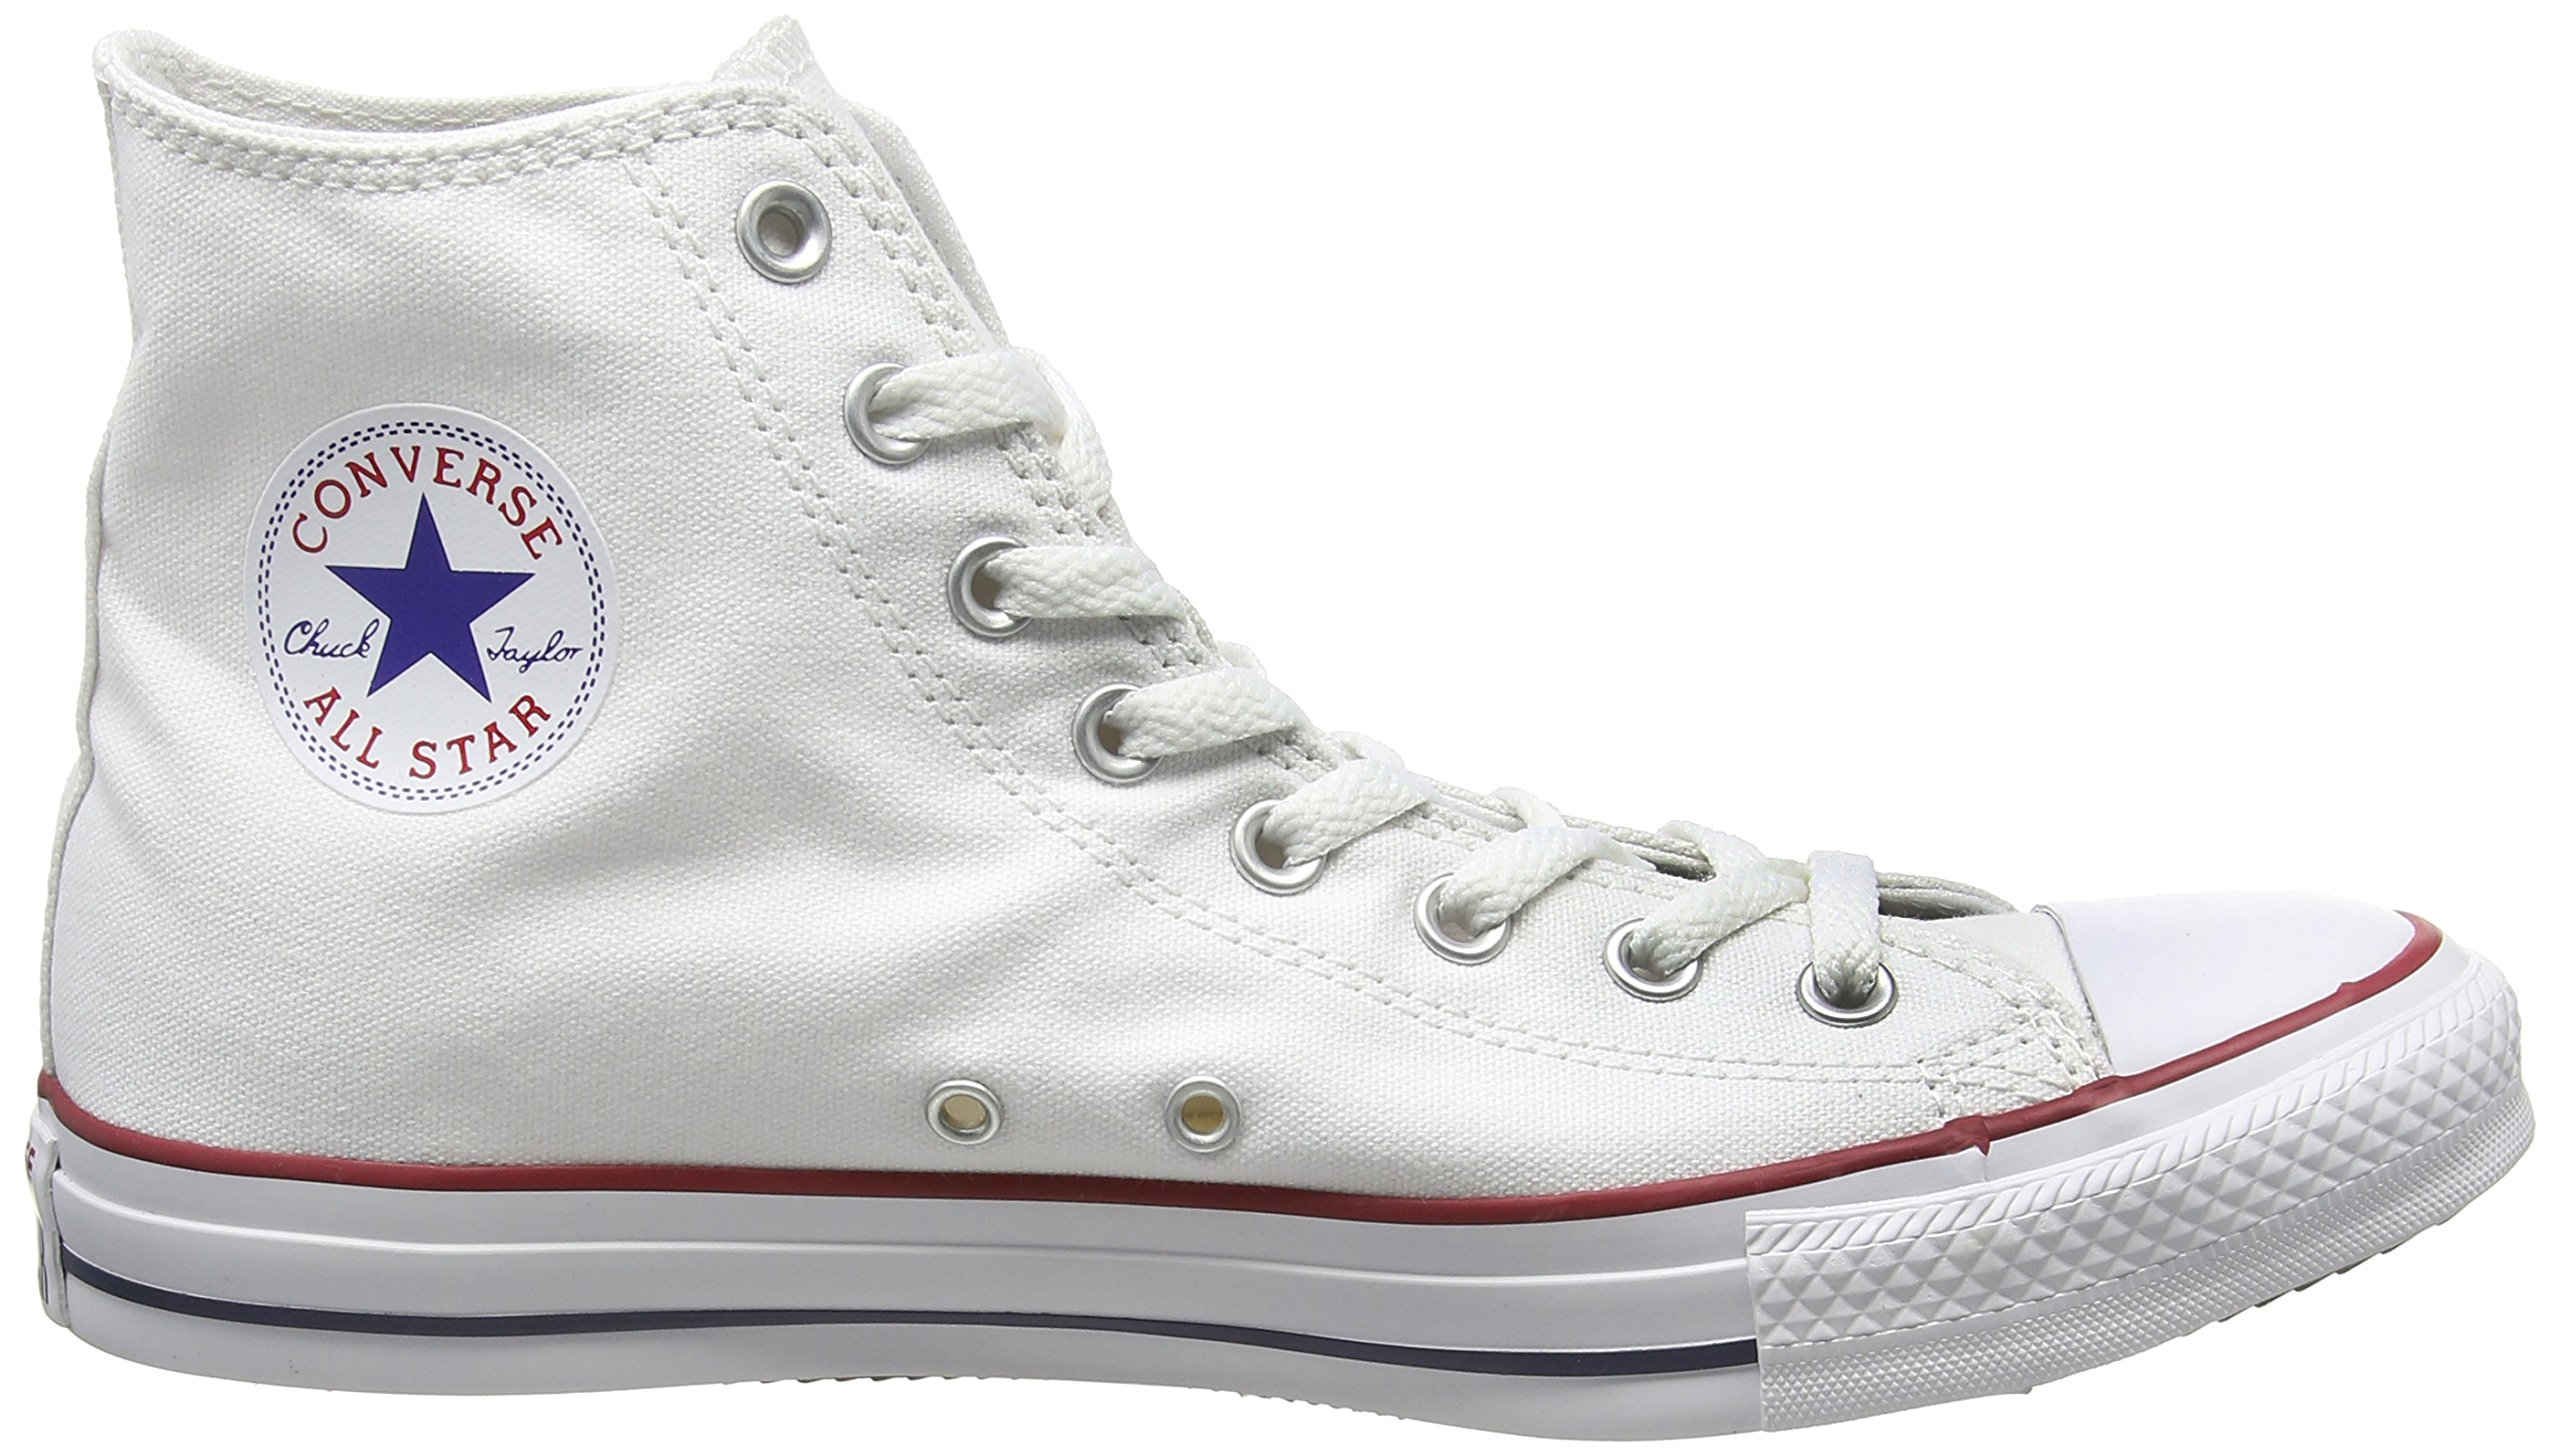 Converse Chuck Taylor All Star High Top Optical White M7650 Mens 12 by Converse (Image #6)